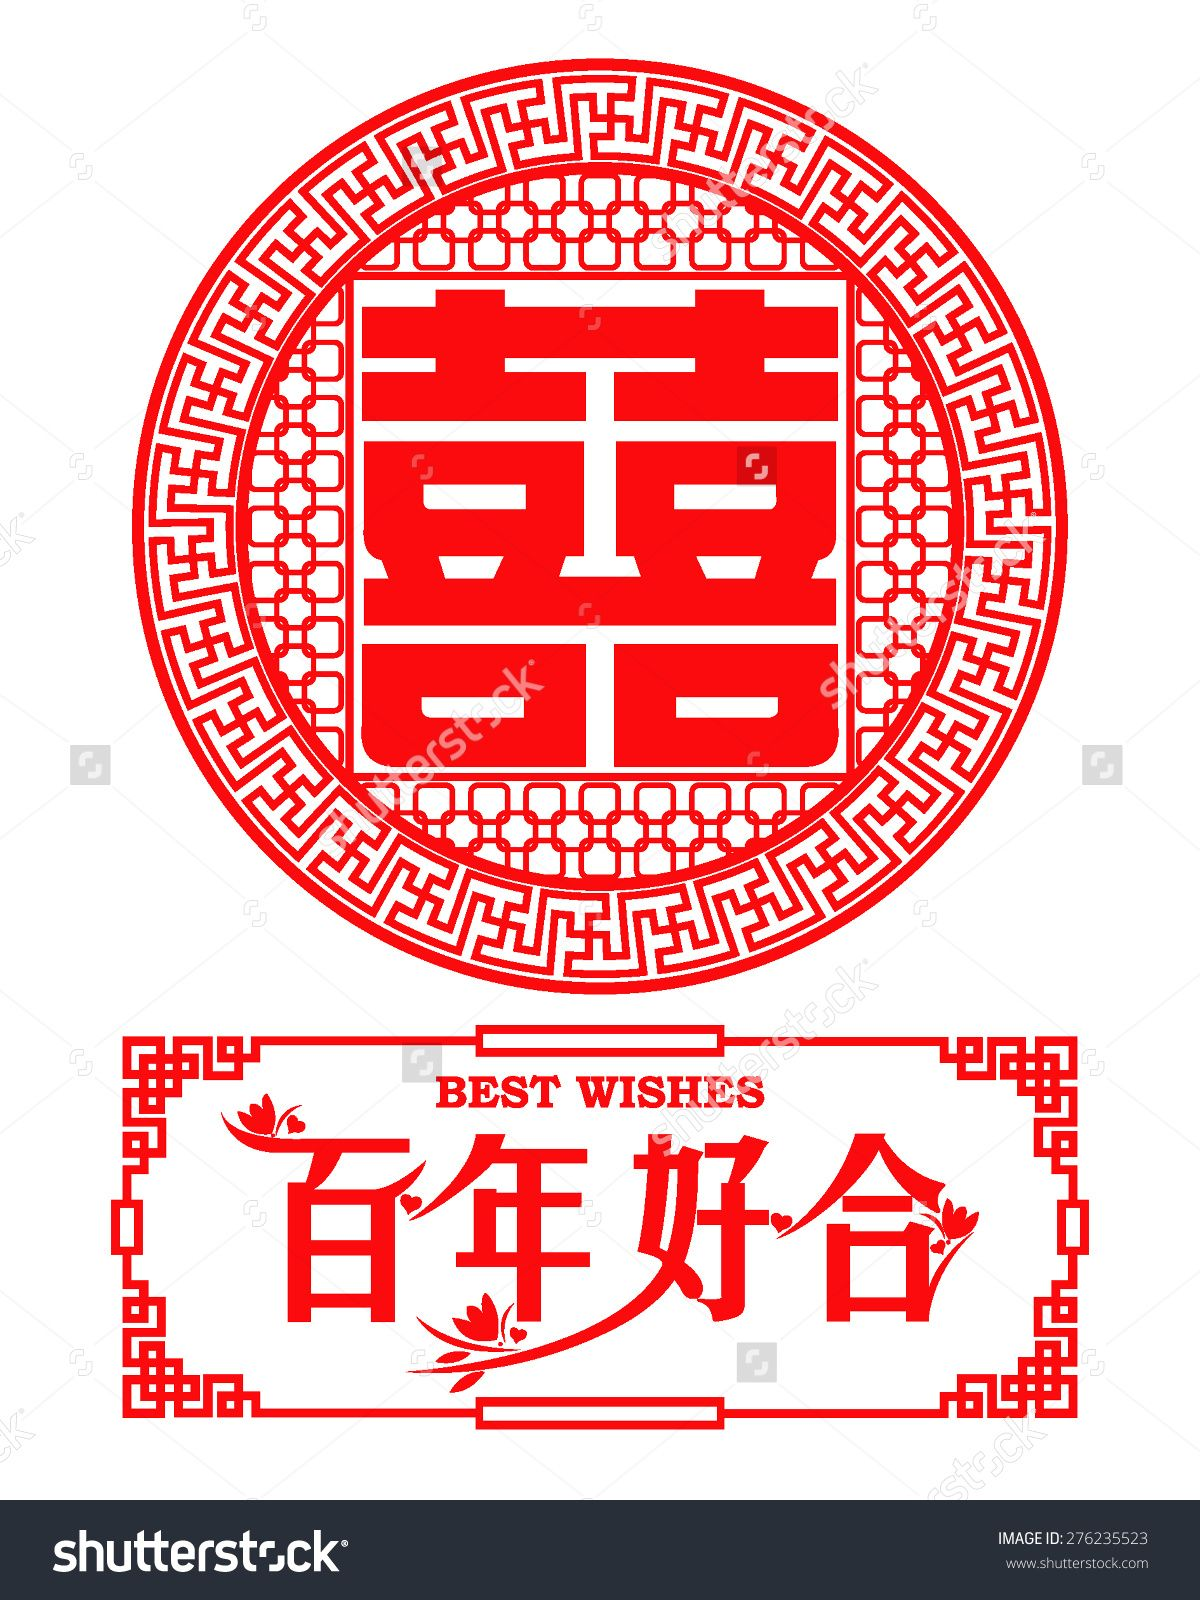 Chinese Symbol Of Double Happiness And Happy Marriage With